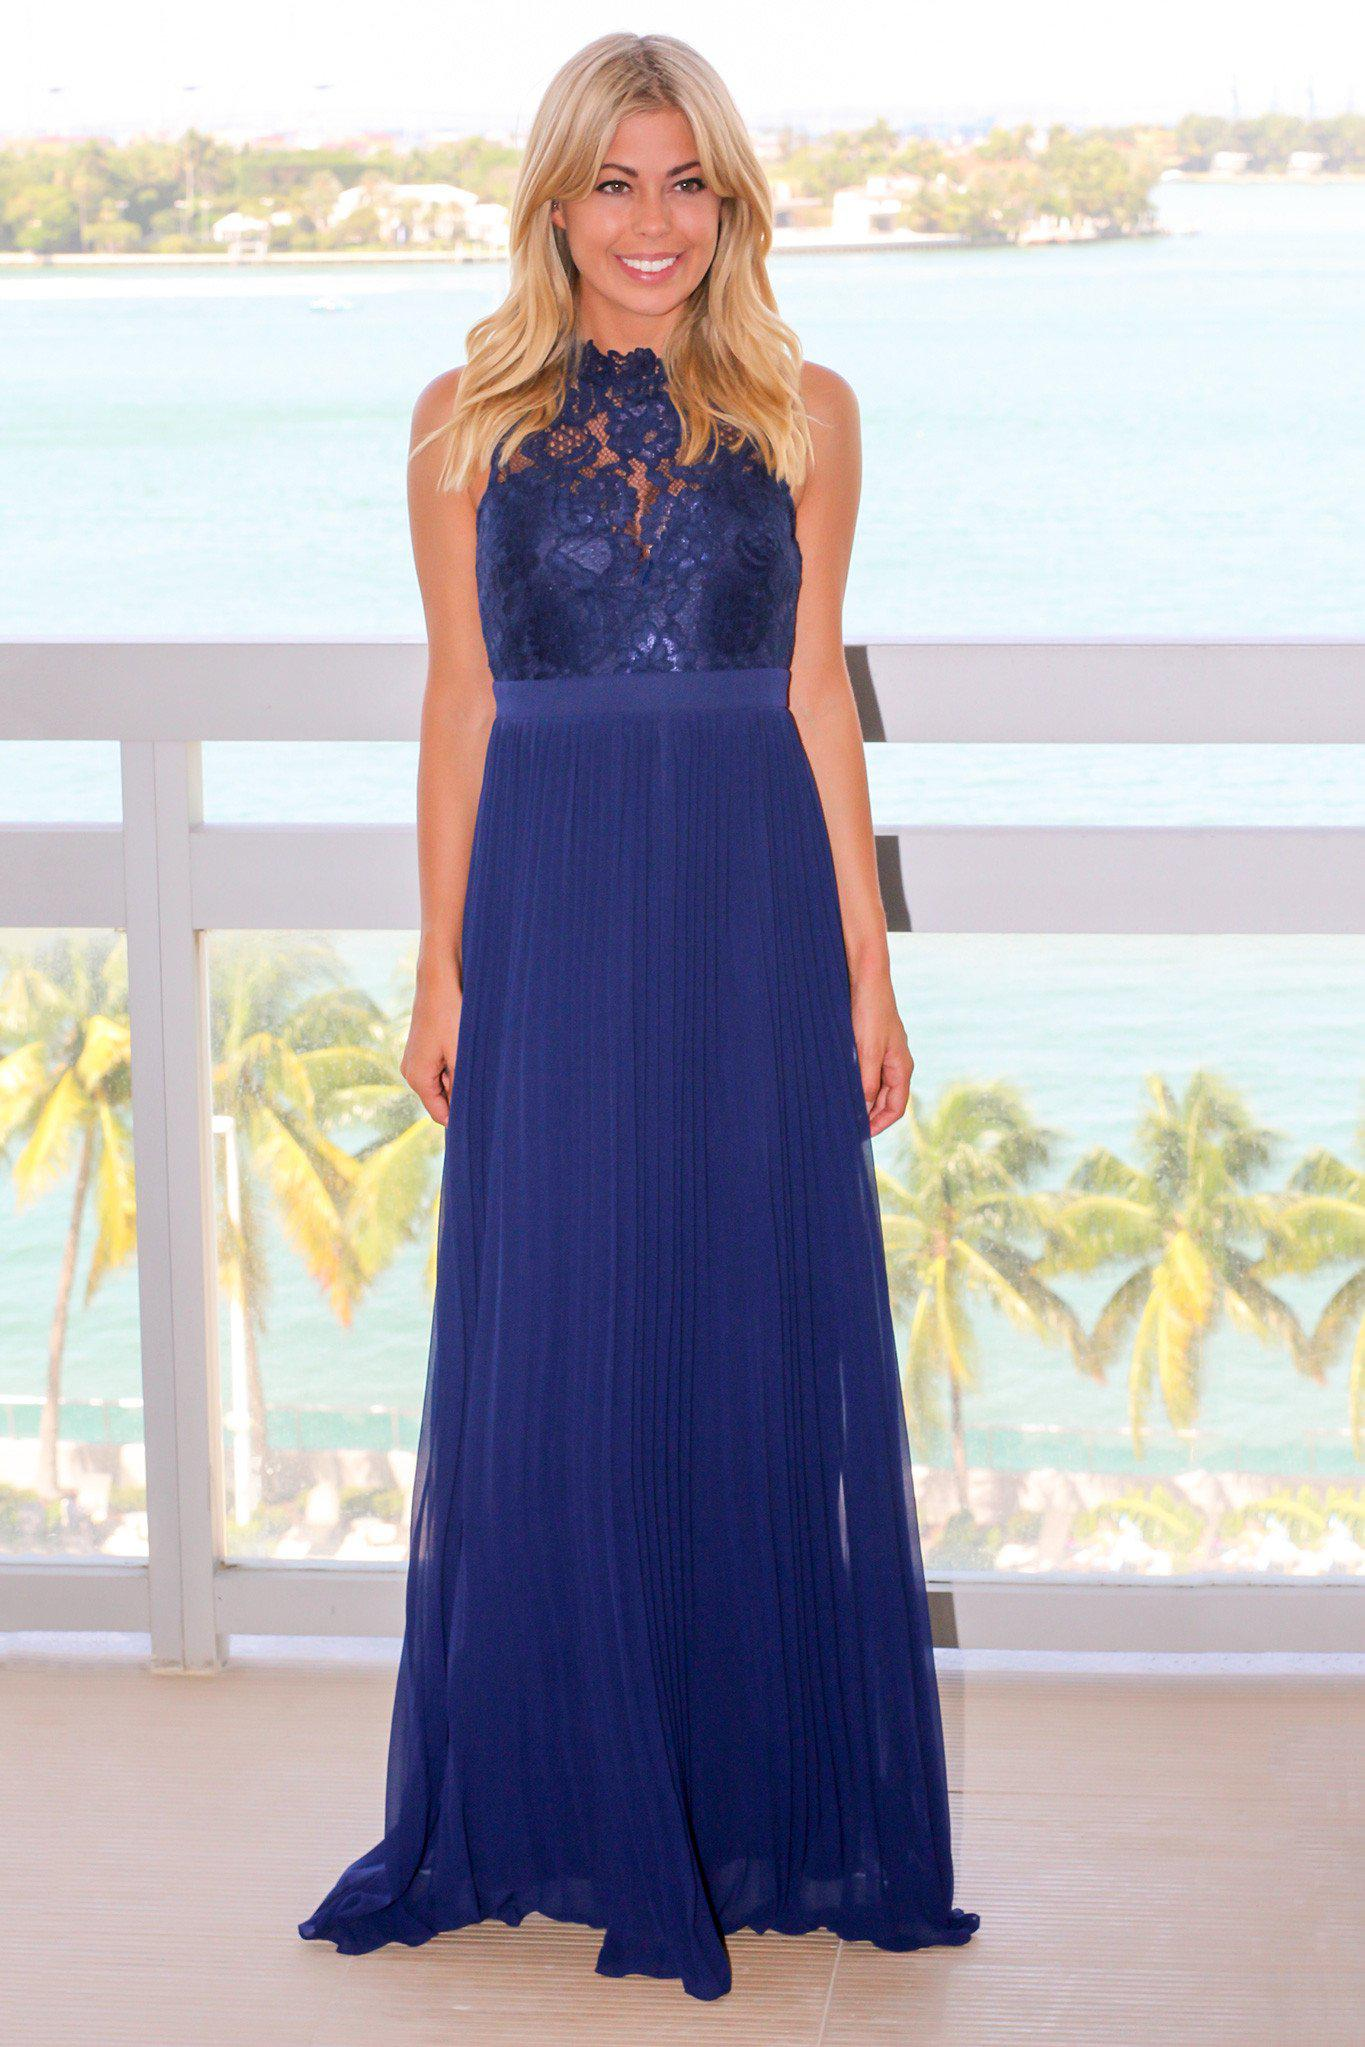 Navy lace maxi dress with pleated skirt bridesmaid dresses navy lace maxi dress with pleated skirt bridesmaid dresses ombrellifo Choice Image